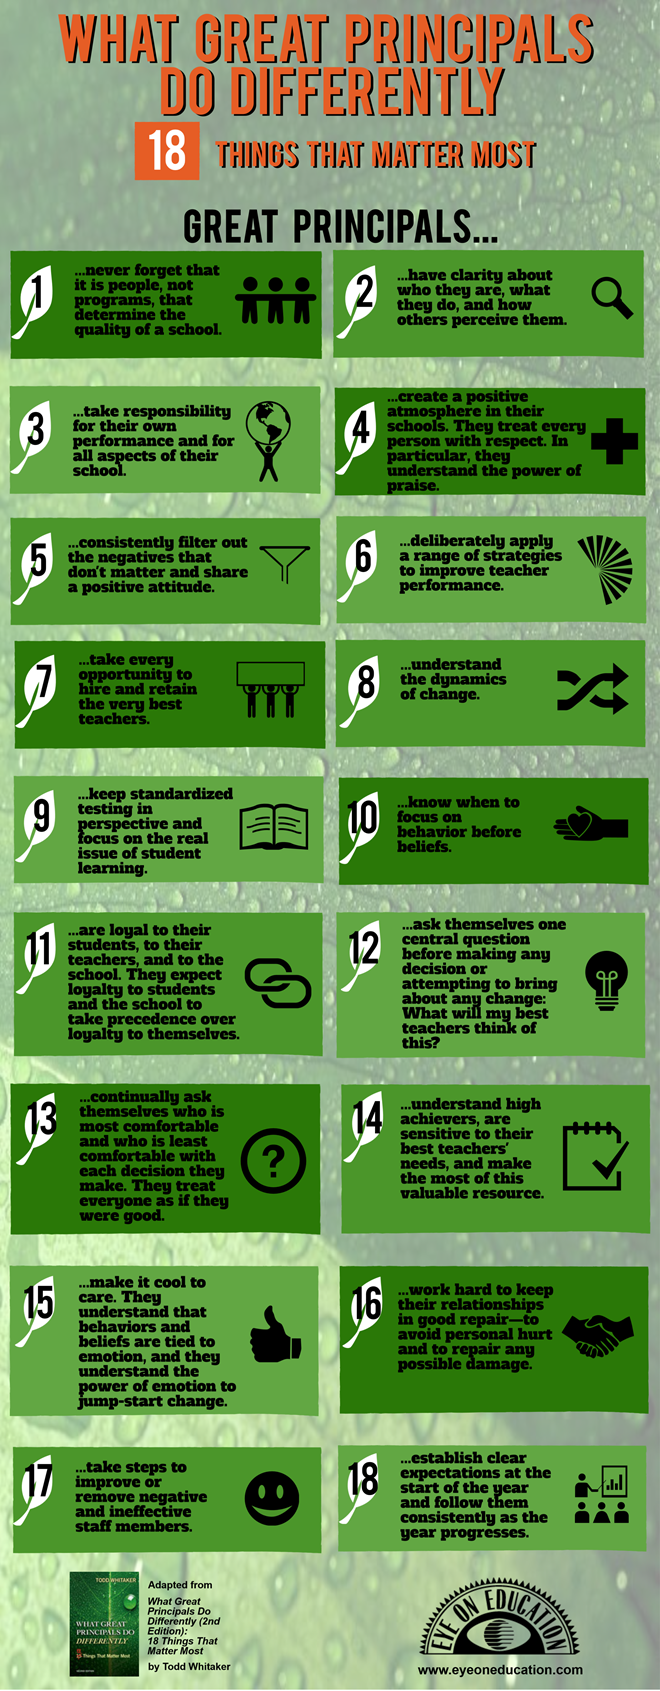 18 characteristics of great school principals